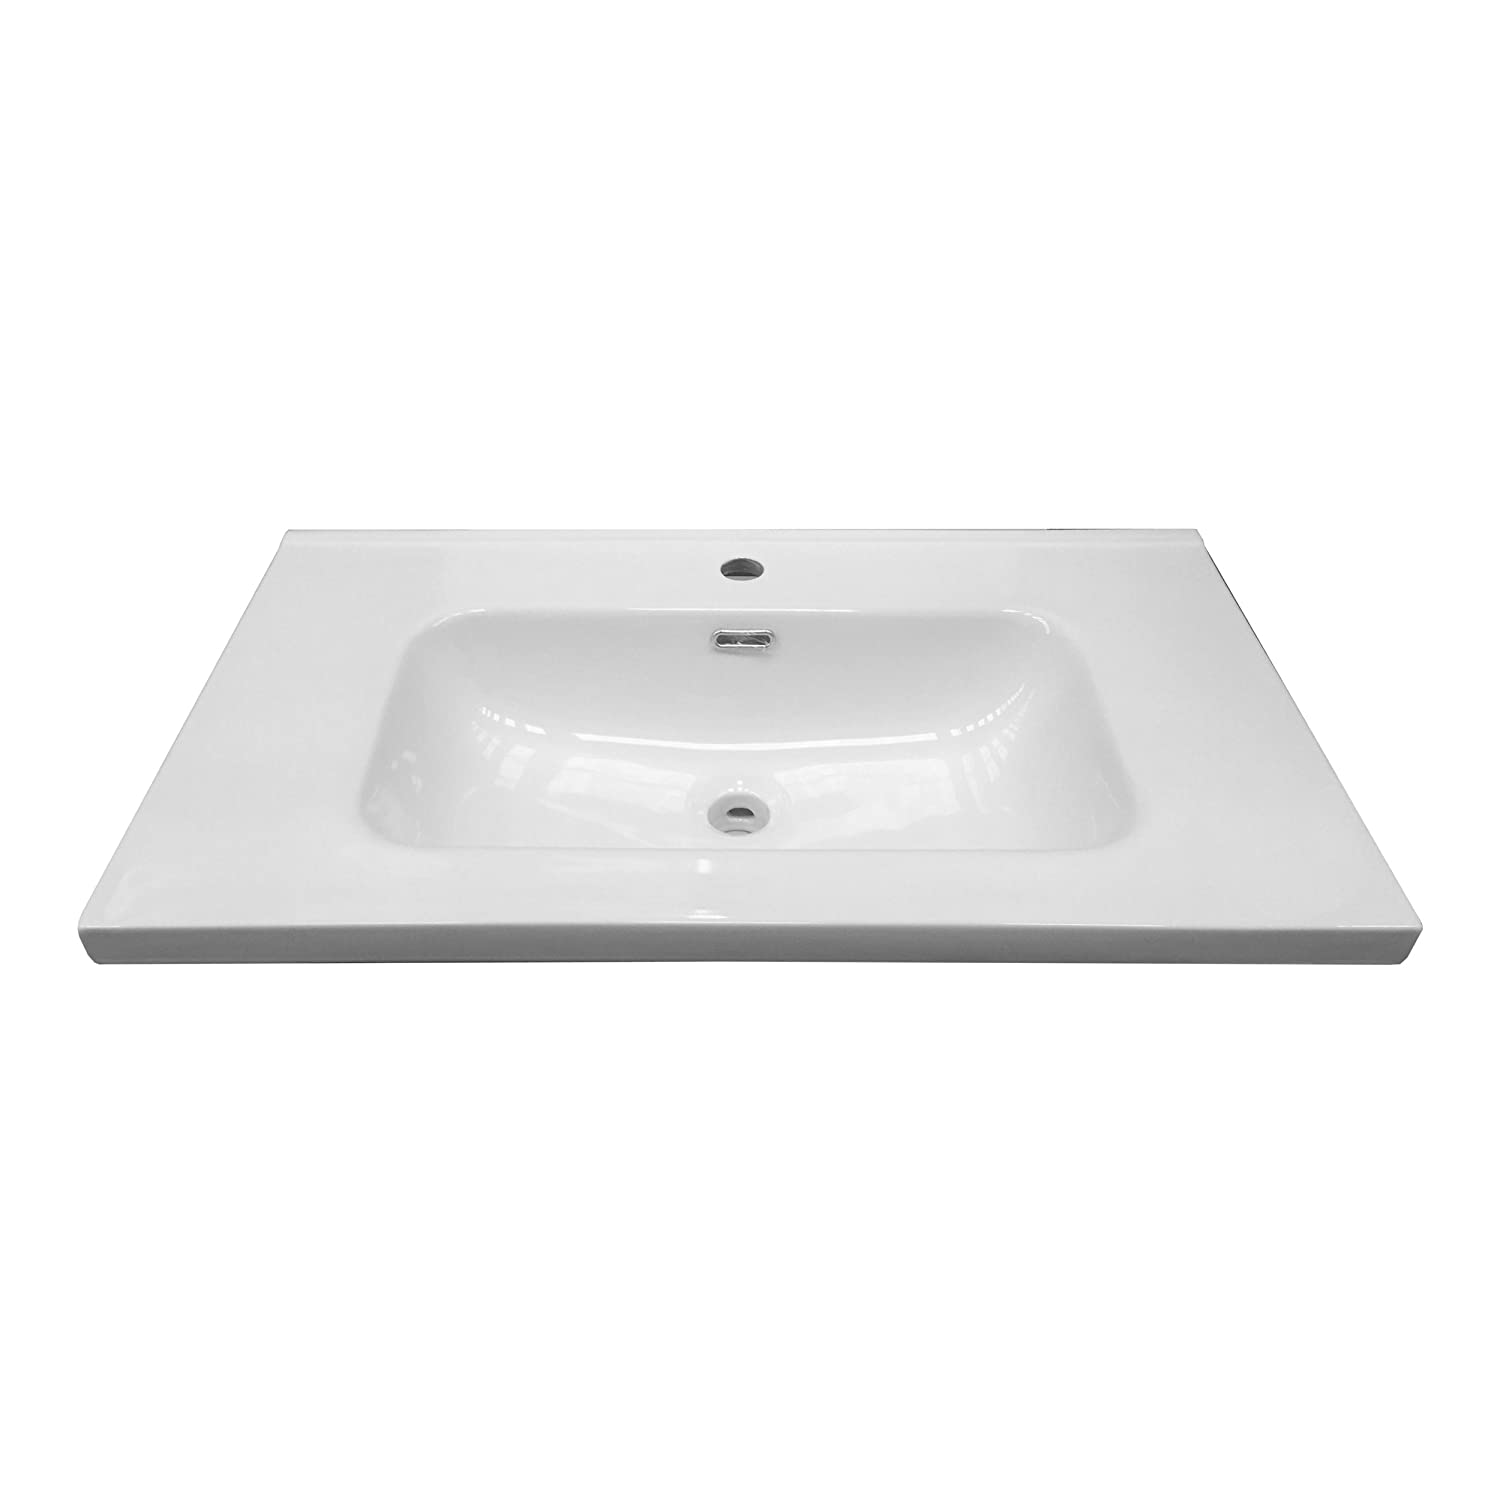 Art & Bath eporet101r immagine, 101 x 46 cm Art&Bath